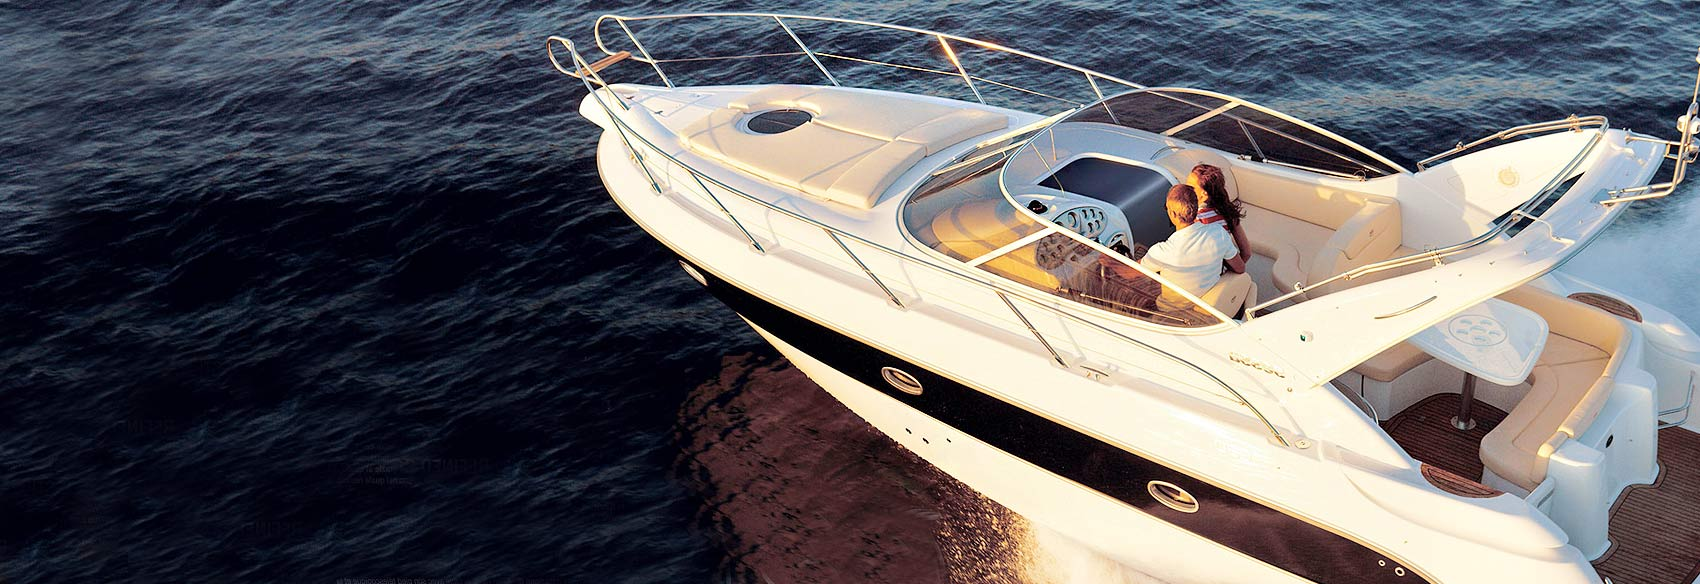 rental of luxury yachts and sailing yachts in Ibiza. Servicios VIP en Ibiza. Consulting Services Ibiza